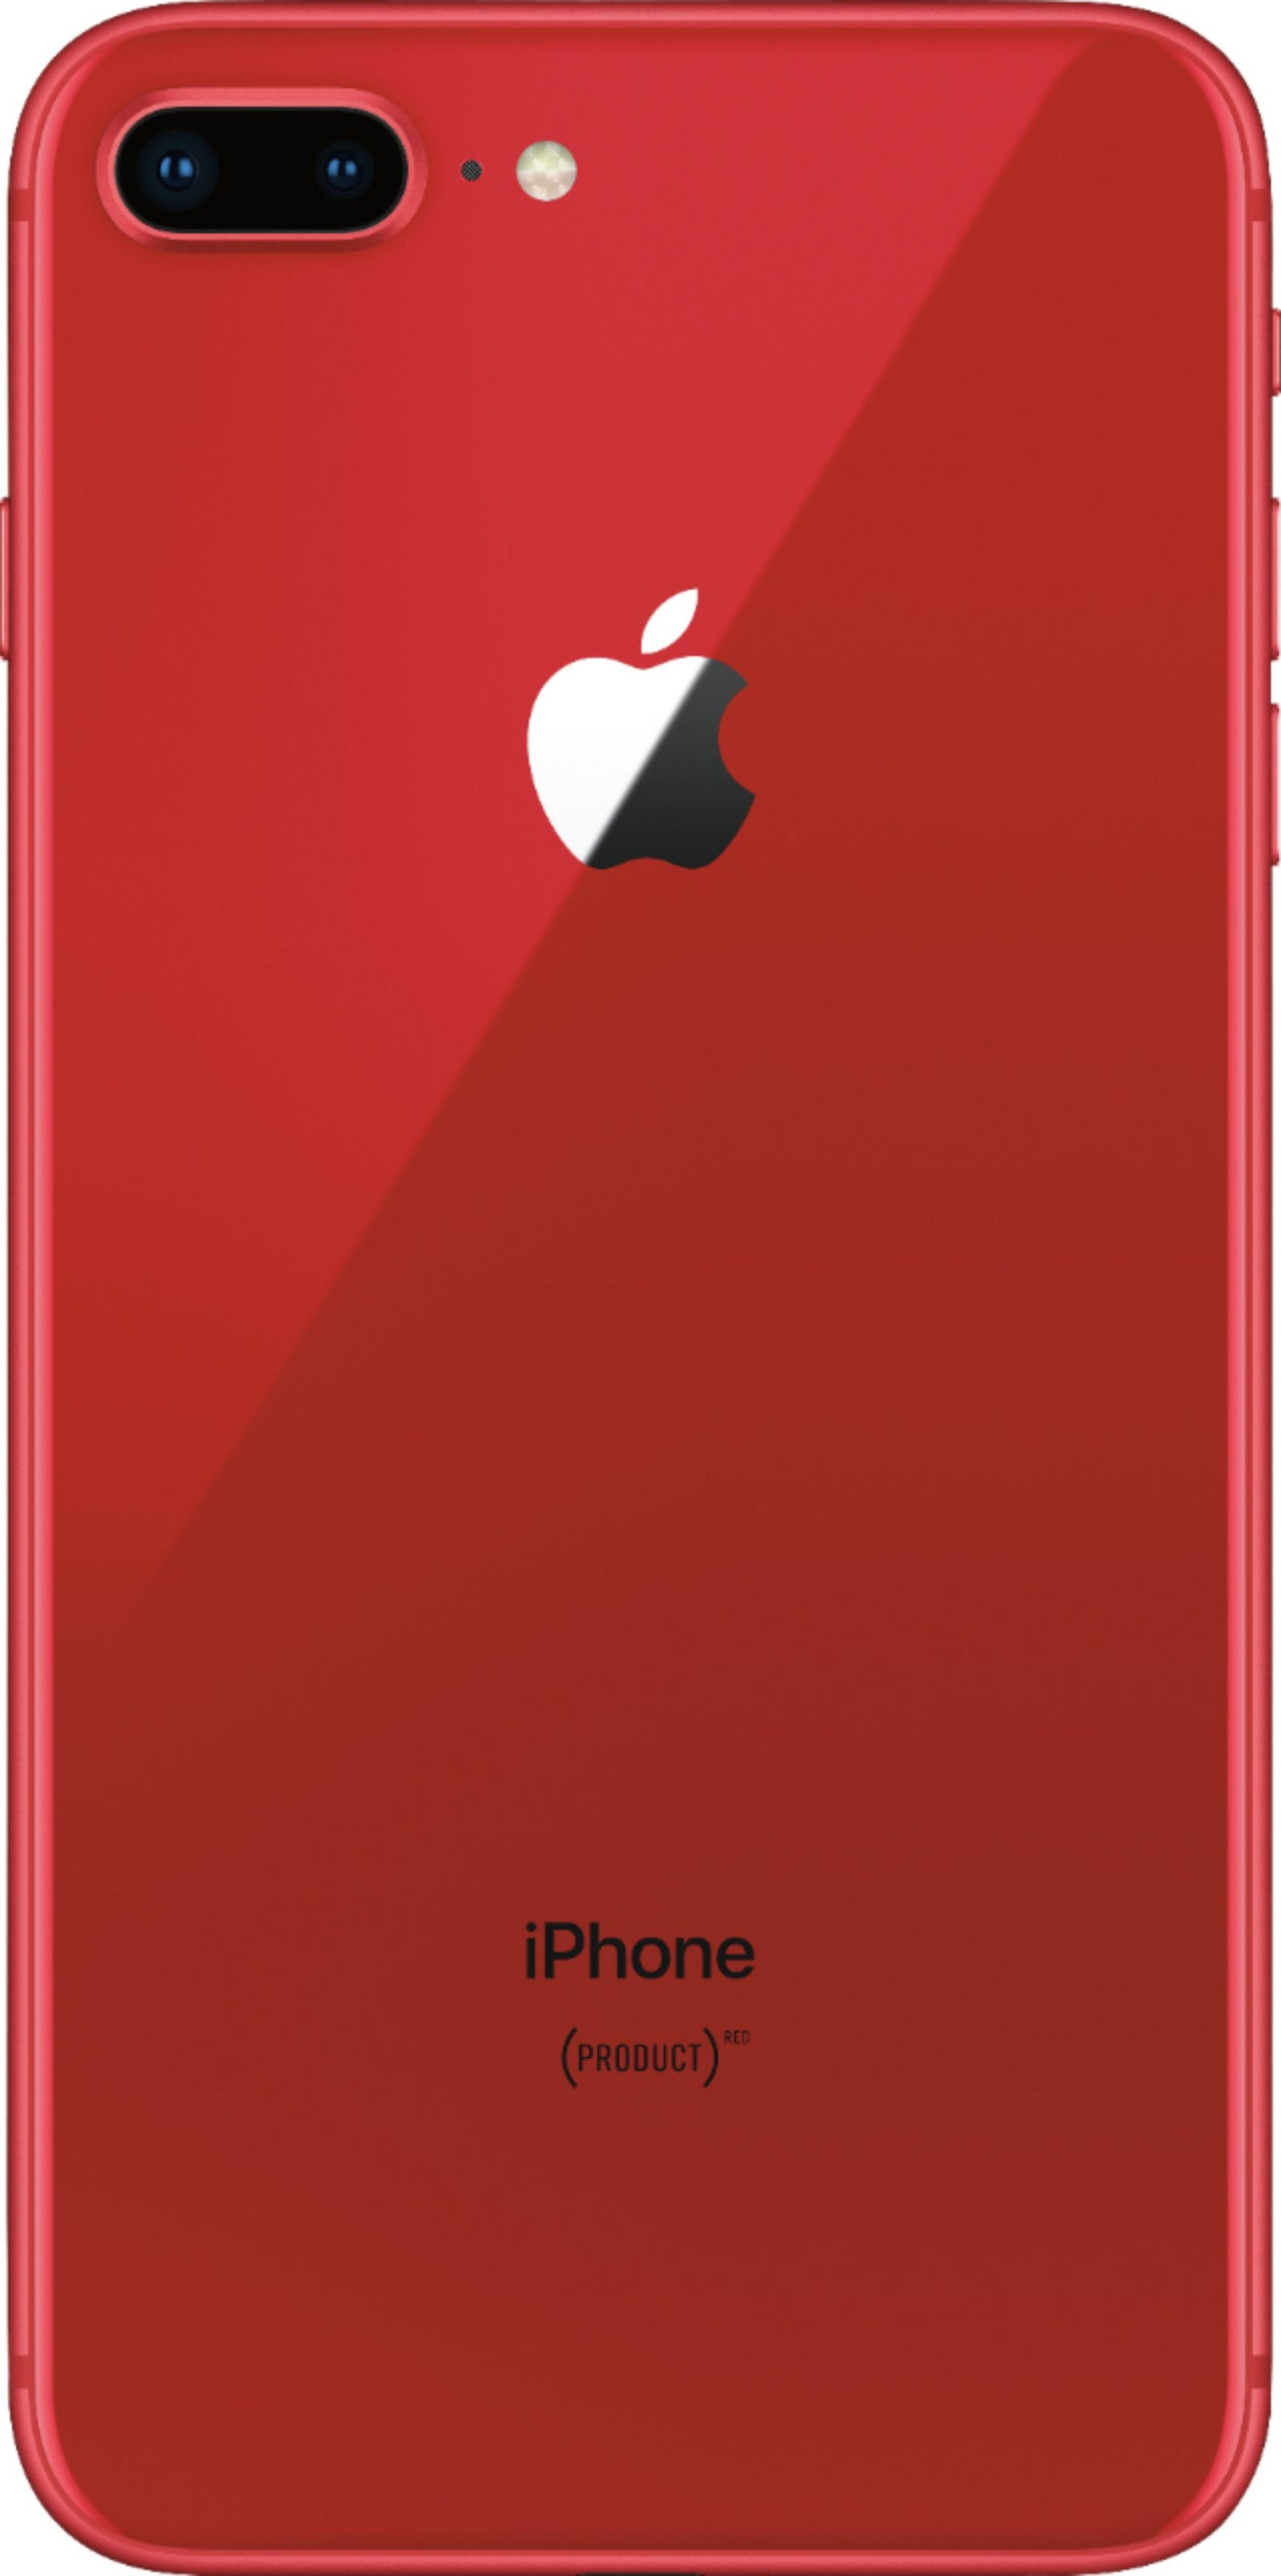 b147cce14 Apple iPhone 8 Plus RED 64GB MRT72LL A (GSM Unlocked Work Worldwide) A1864  ...